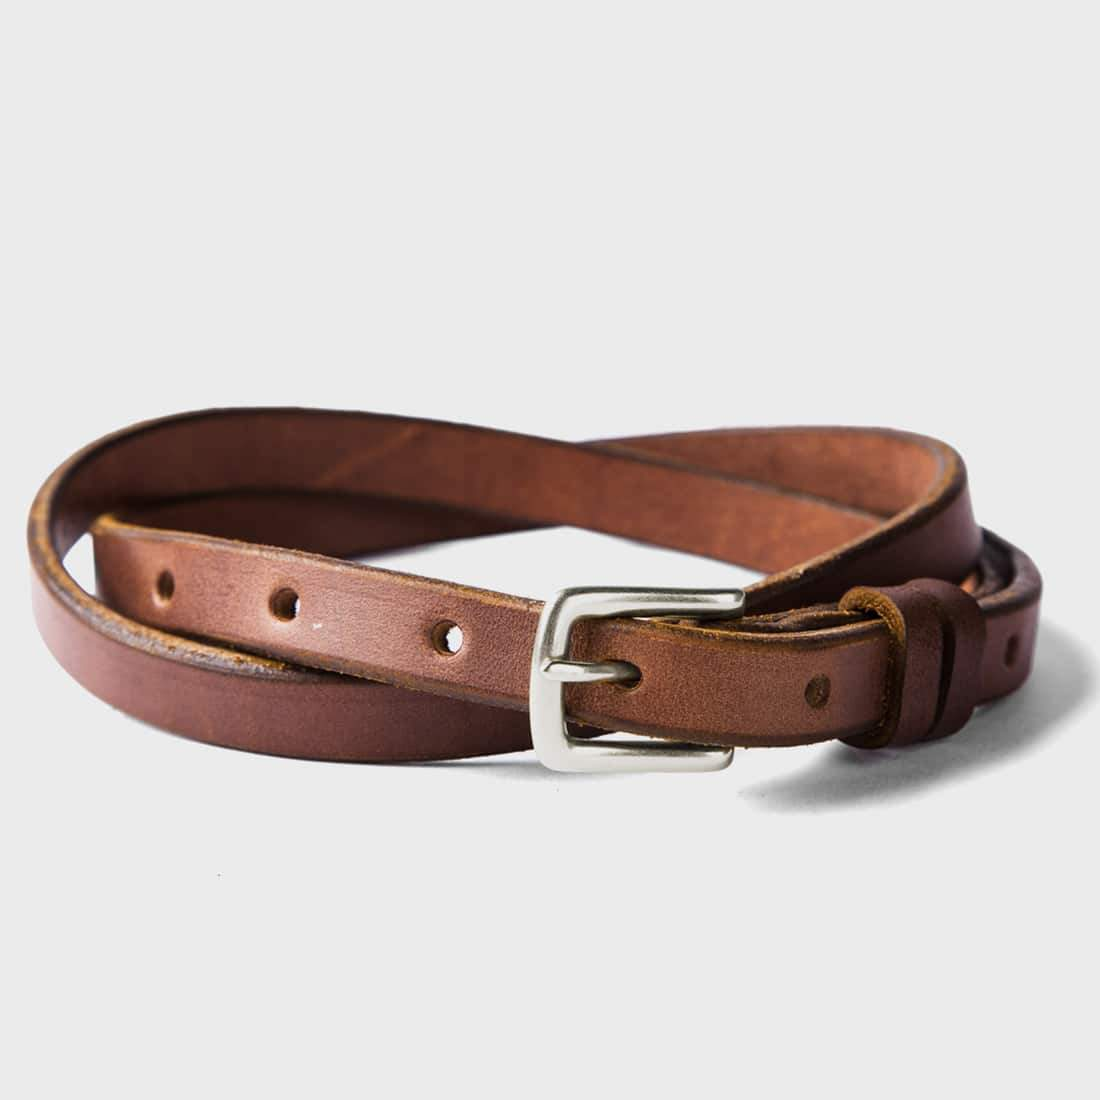 Tanner Goods Narrow Belt Cognac